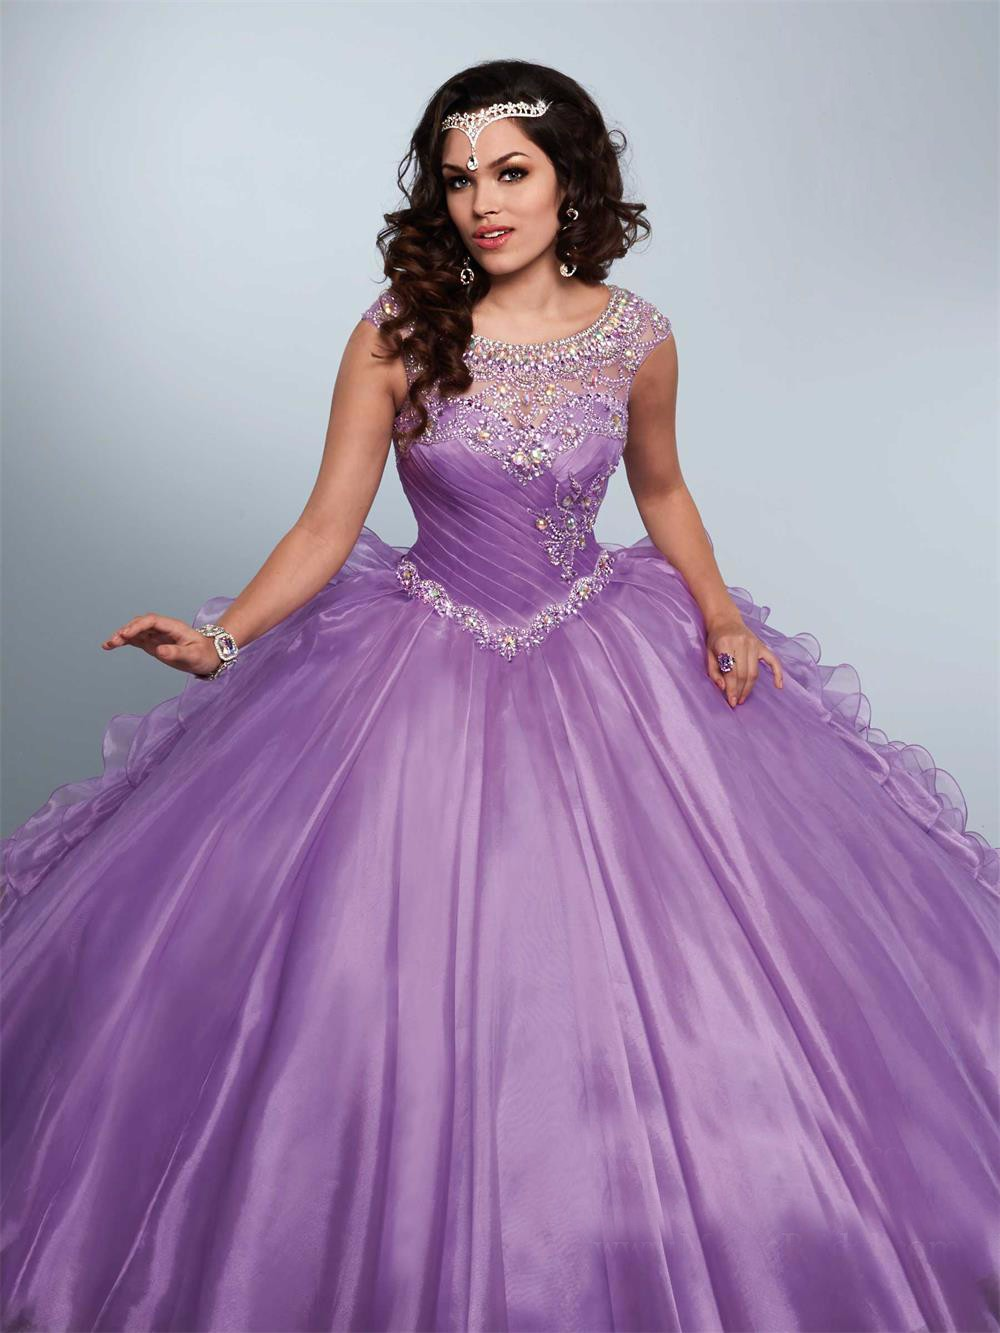 f3dca98f360e 2016 Light Purple Blue Quinceanera Dresses For 15 Year Ruffles Tiered  Organza Beaded Vestido de 15 Anos Sweet 16 Dress-in Quinceanera Dresses  from Weddings ...